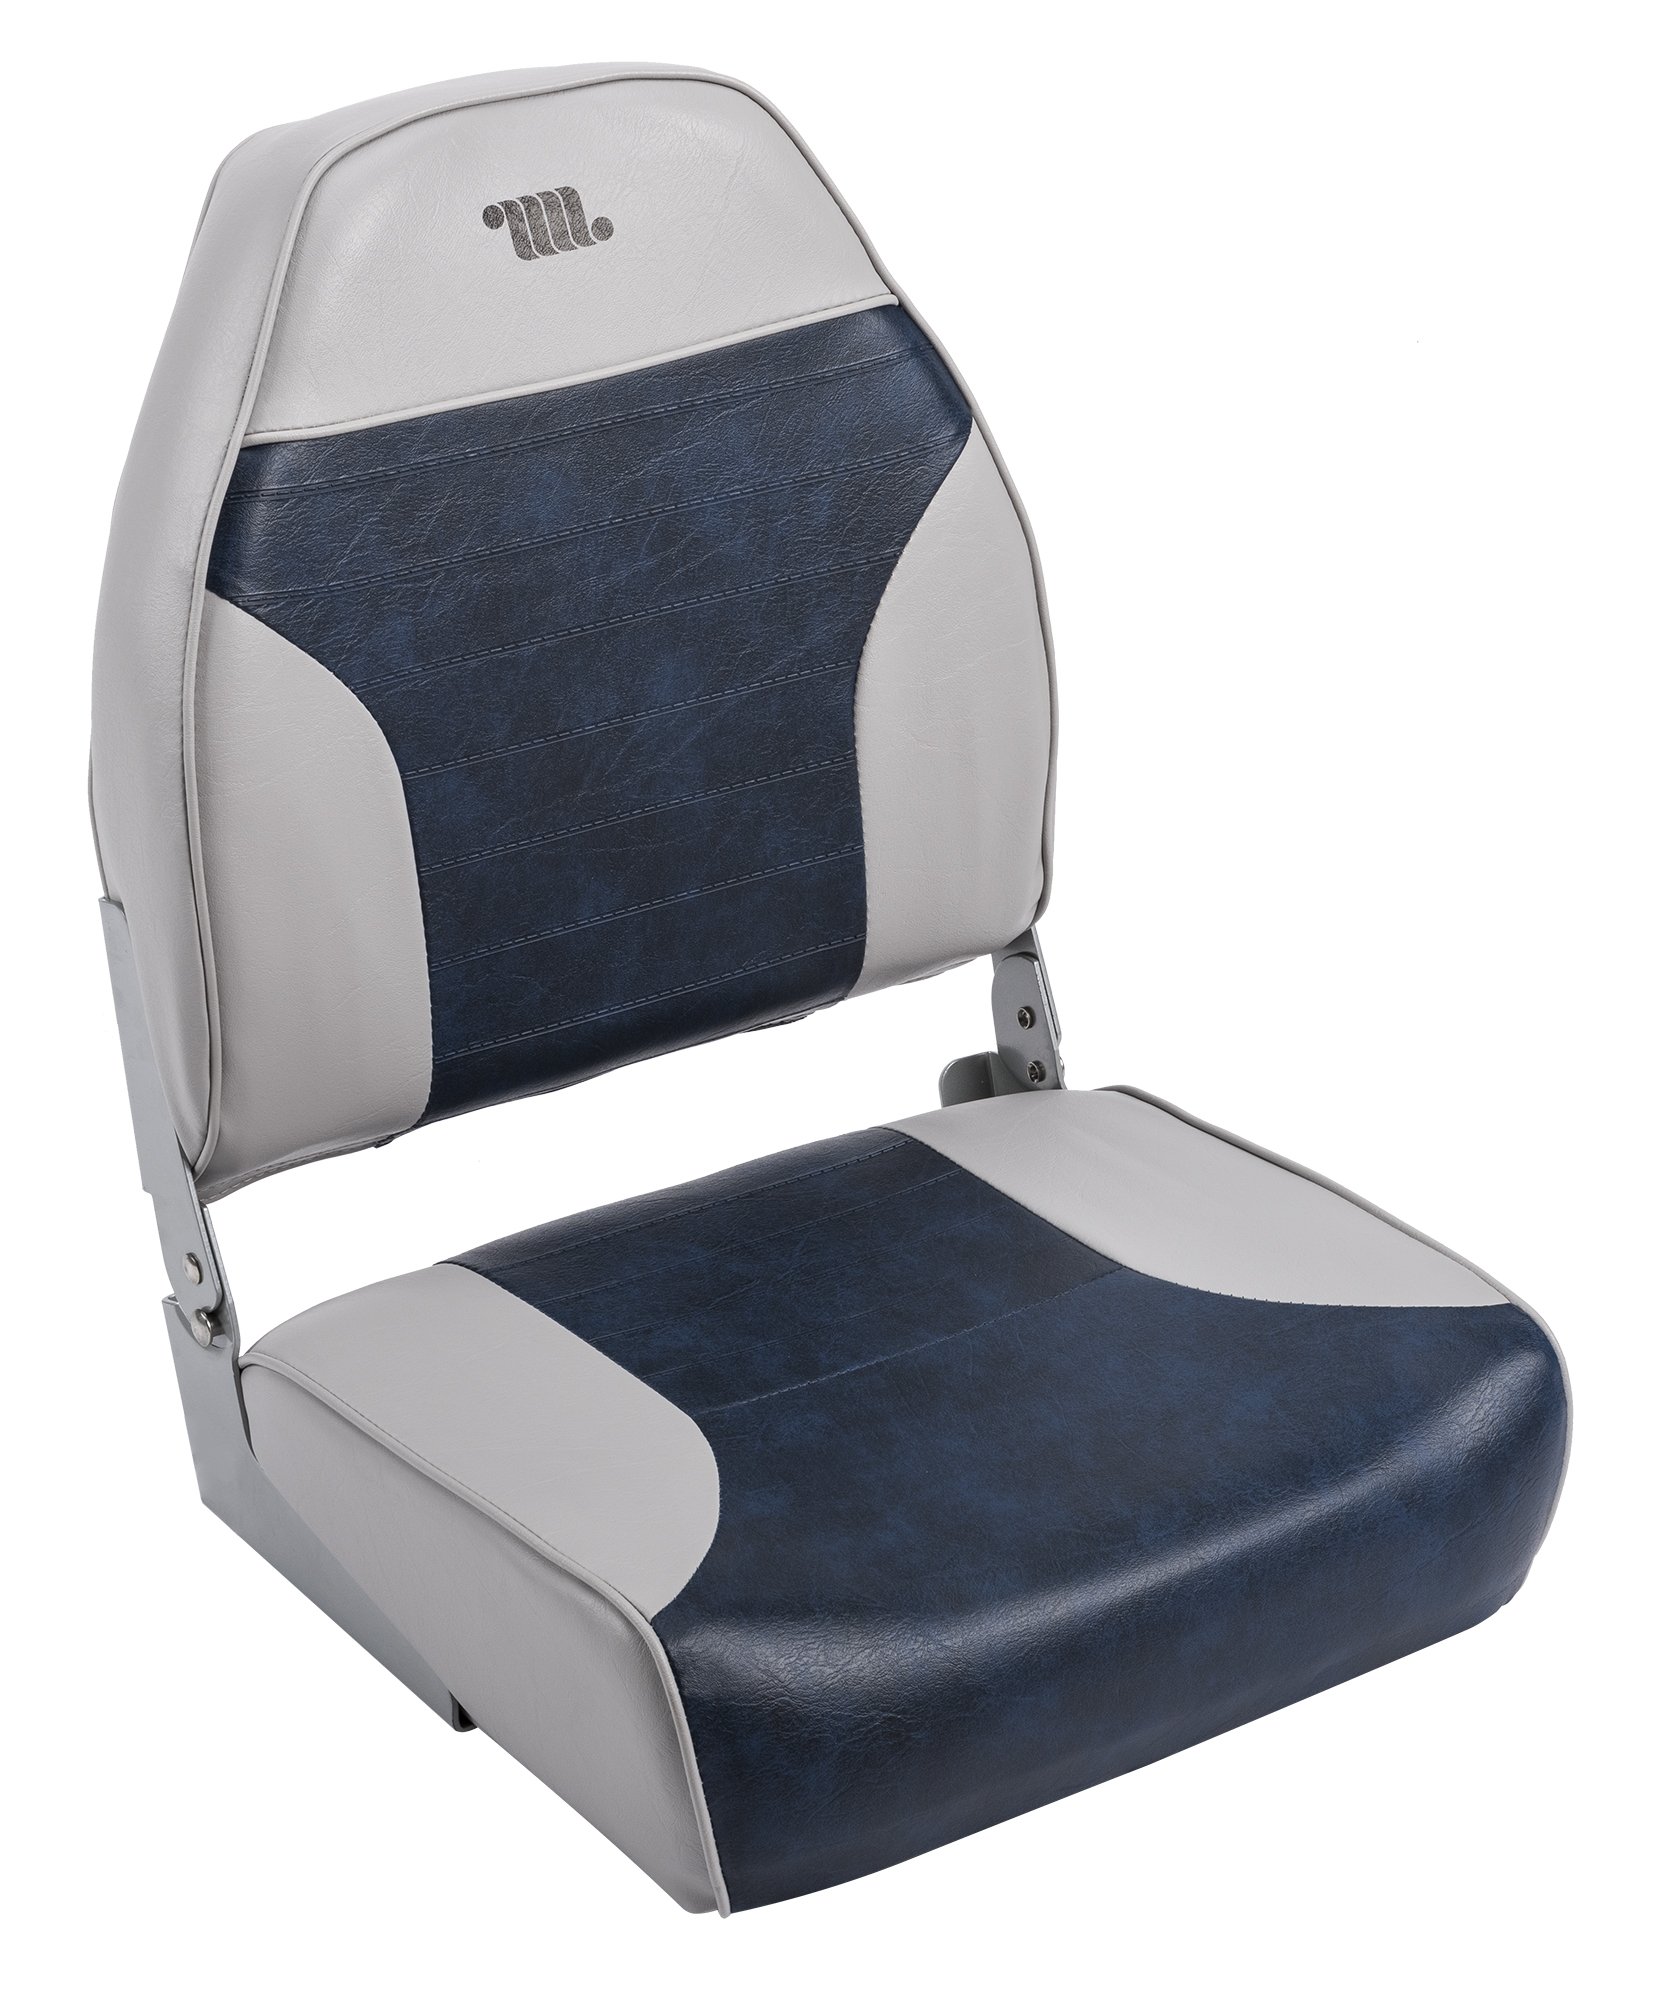 replacement captains chairs for boats hanging chair cushion wise boat seats 8wd588pls 660 standard high back seat grey navy